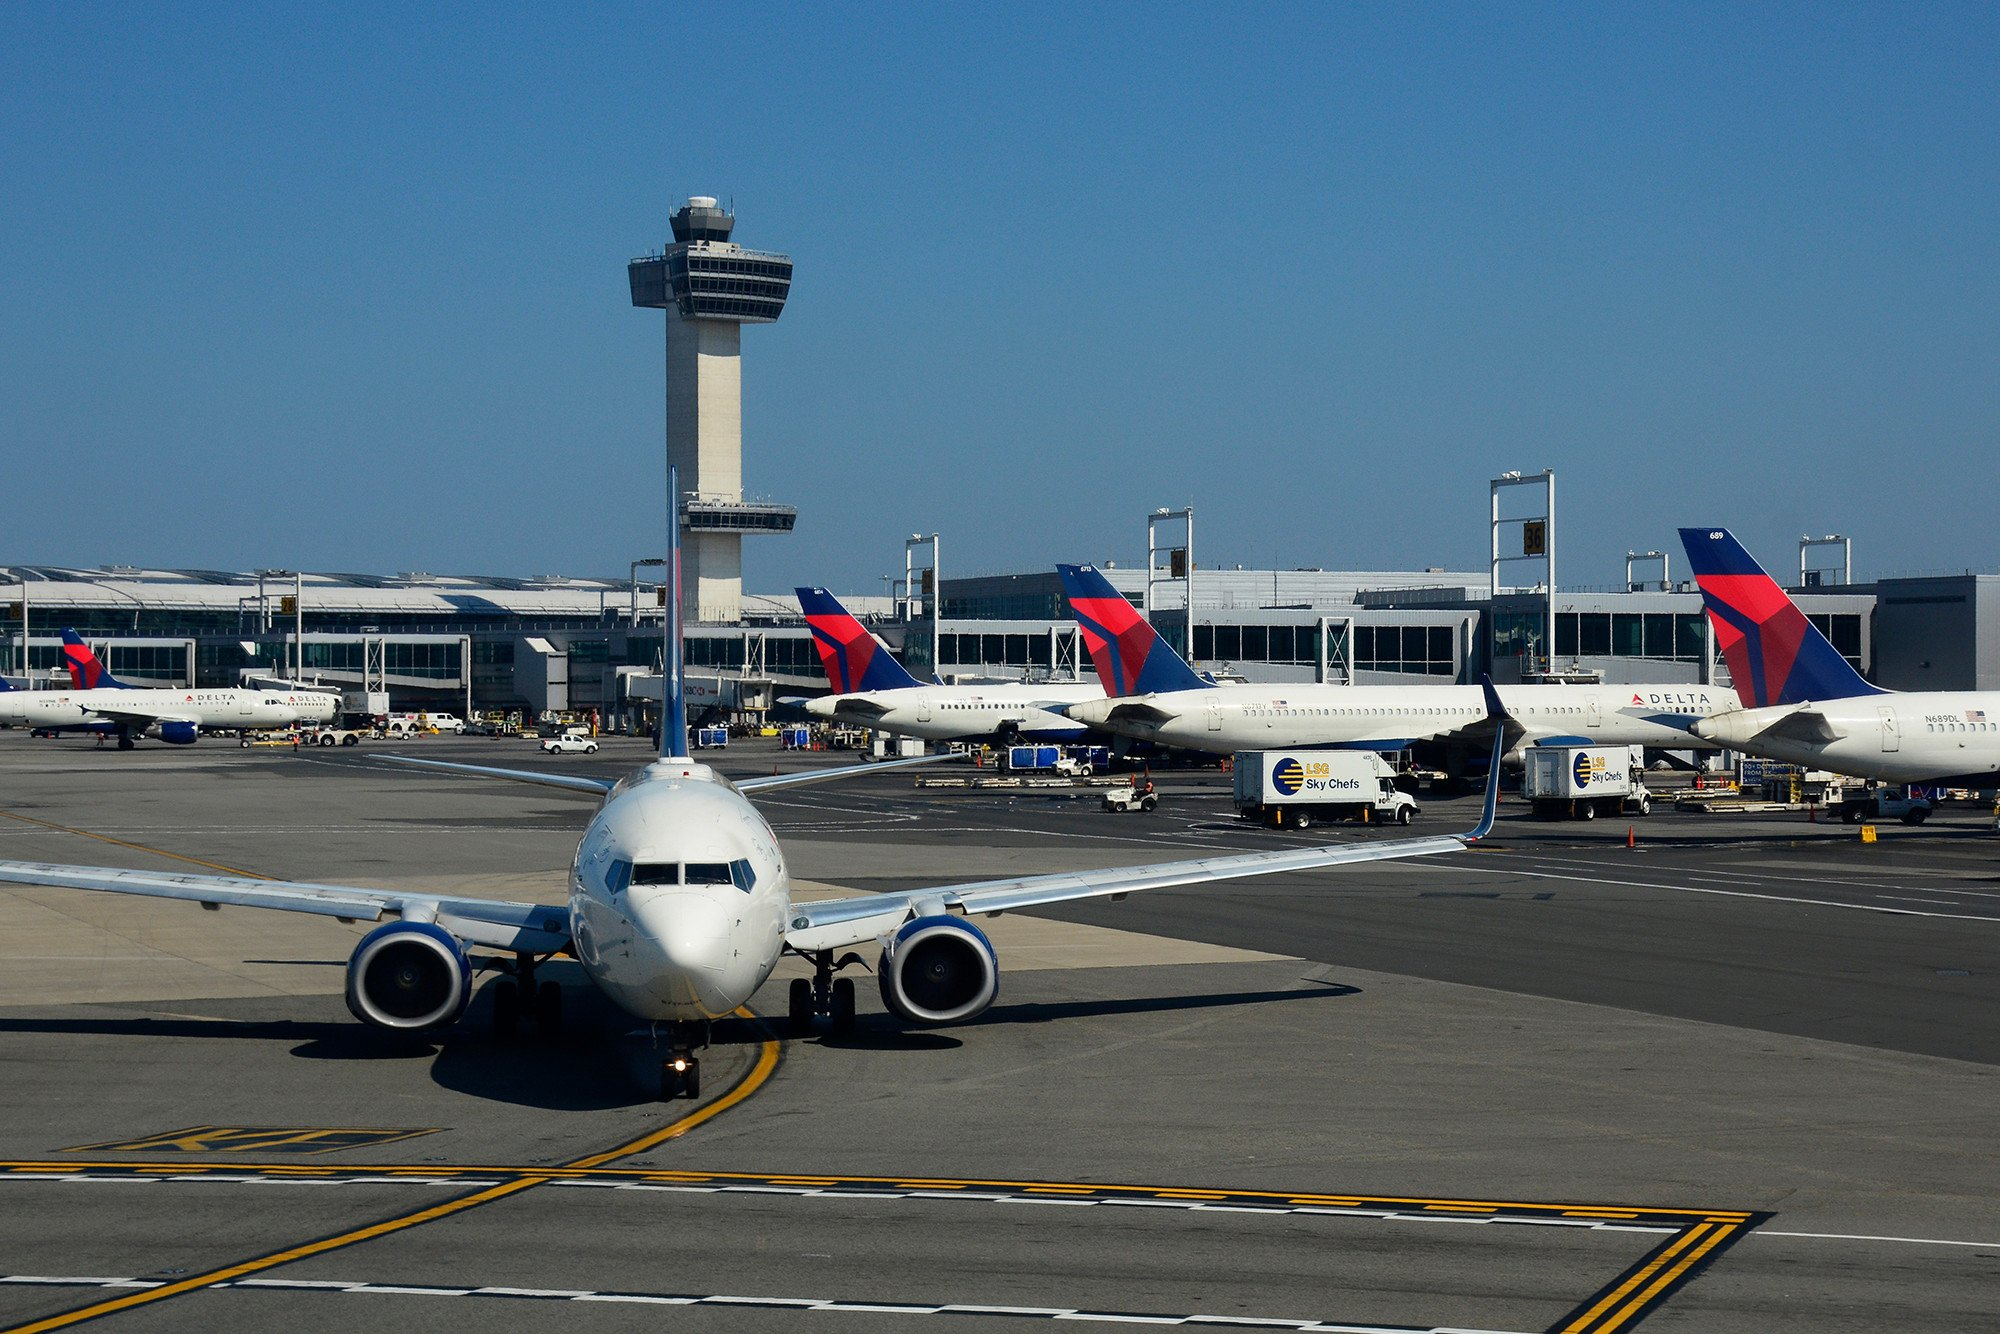 The time has come to privatize JFK Airport